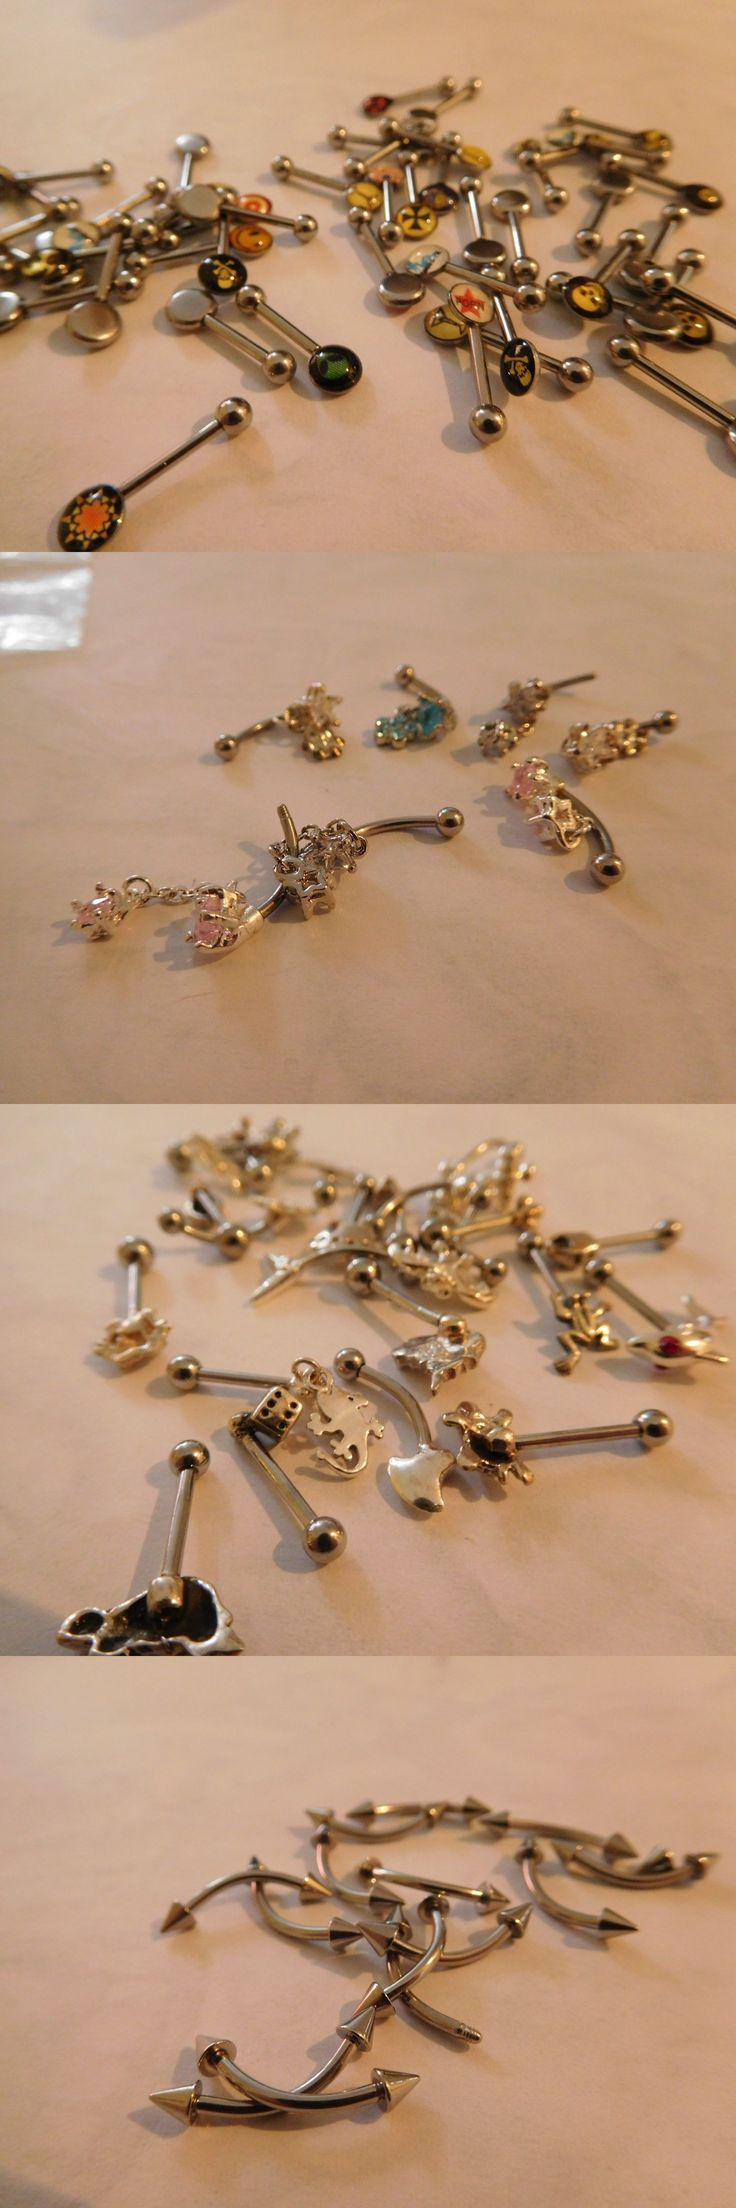 Other Wholesale Body Jewelry 51011: Body Jewelry Eyebrows Lot Of 116 BUY IT NOW ONLY: $53.0